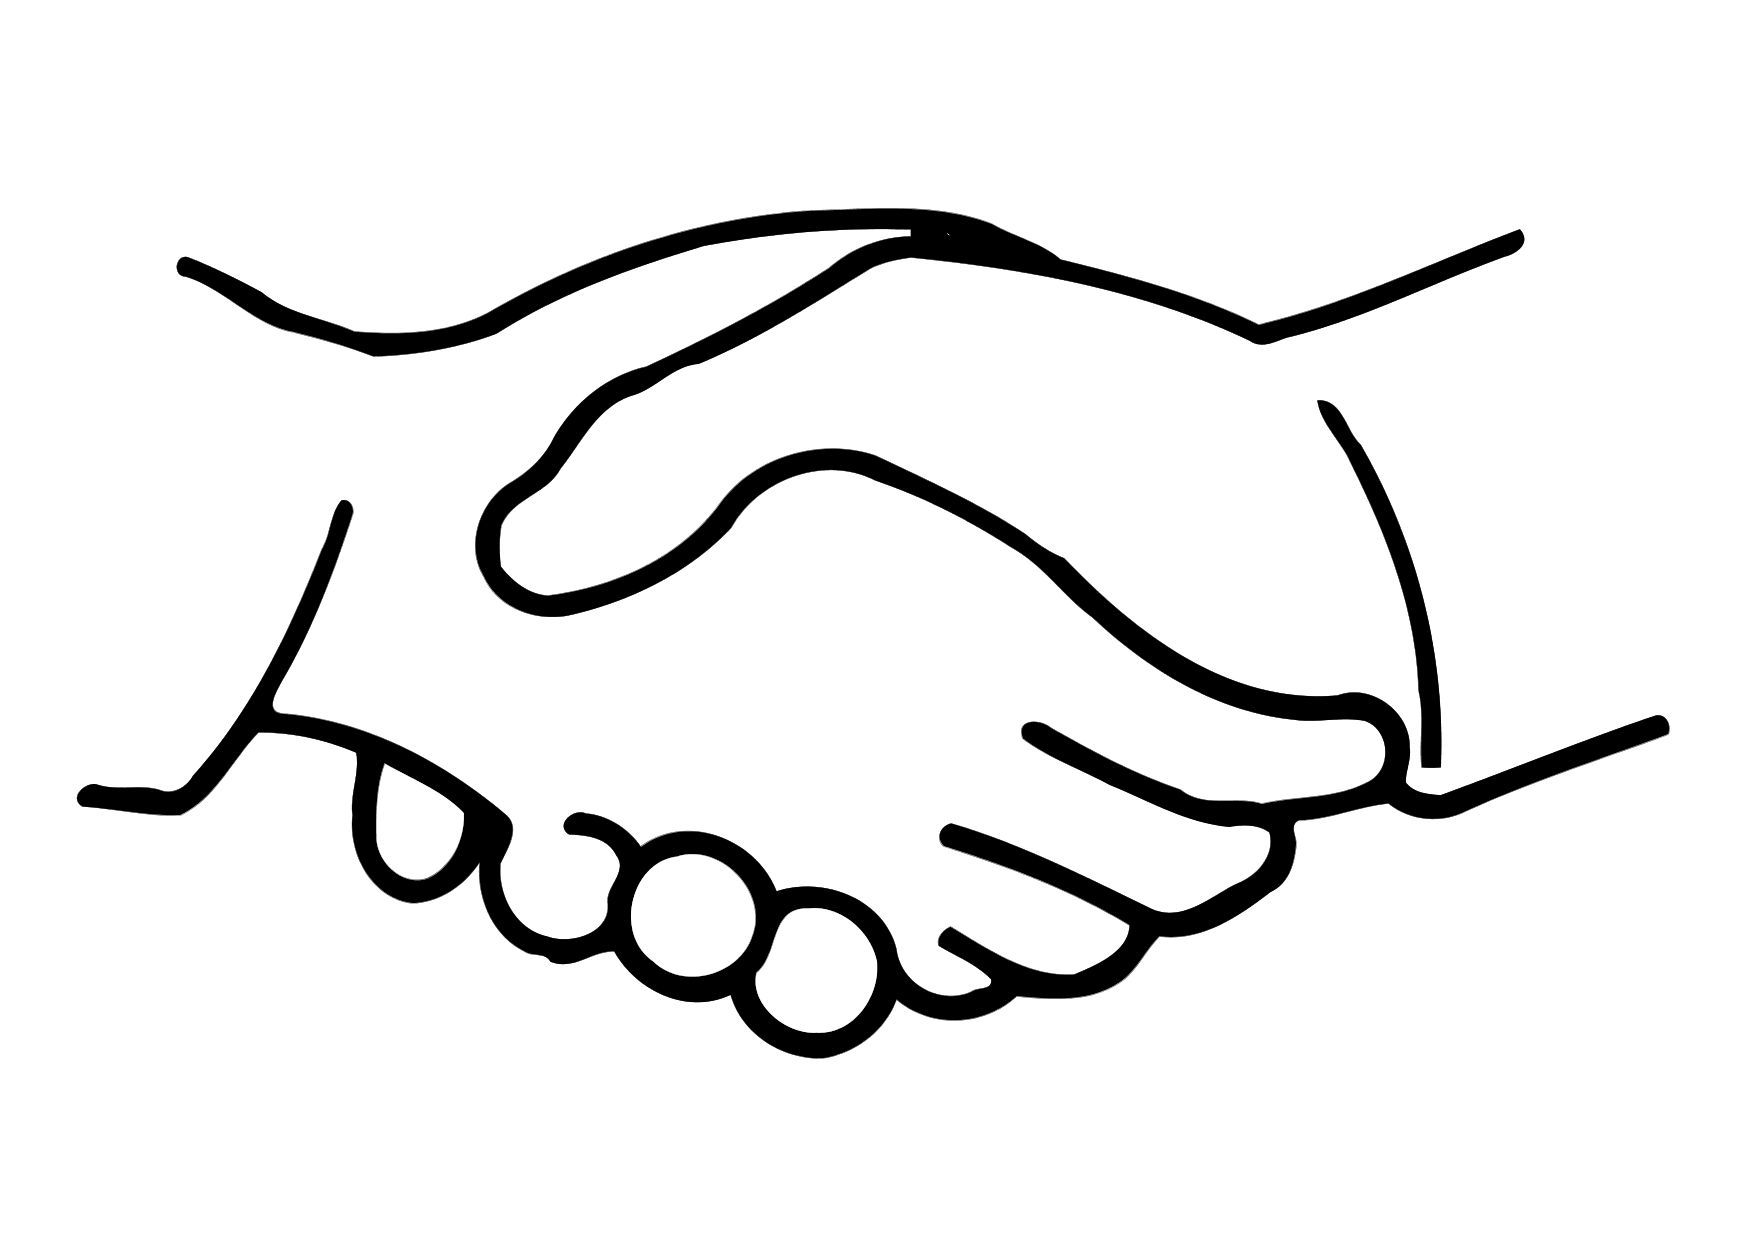 Handshake clipart simple. Pin by betul on